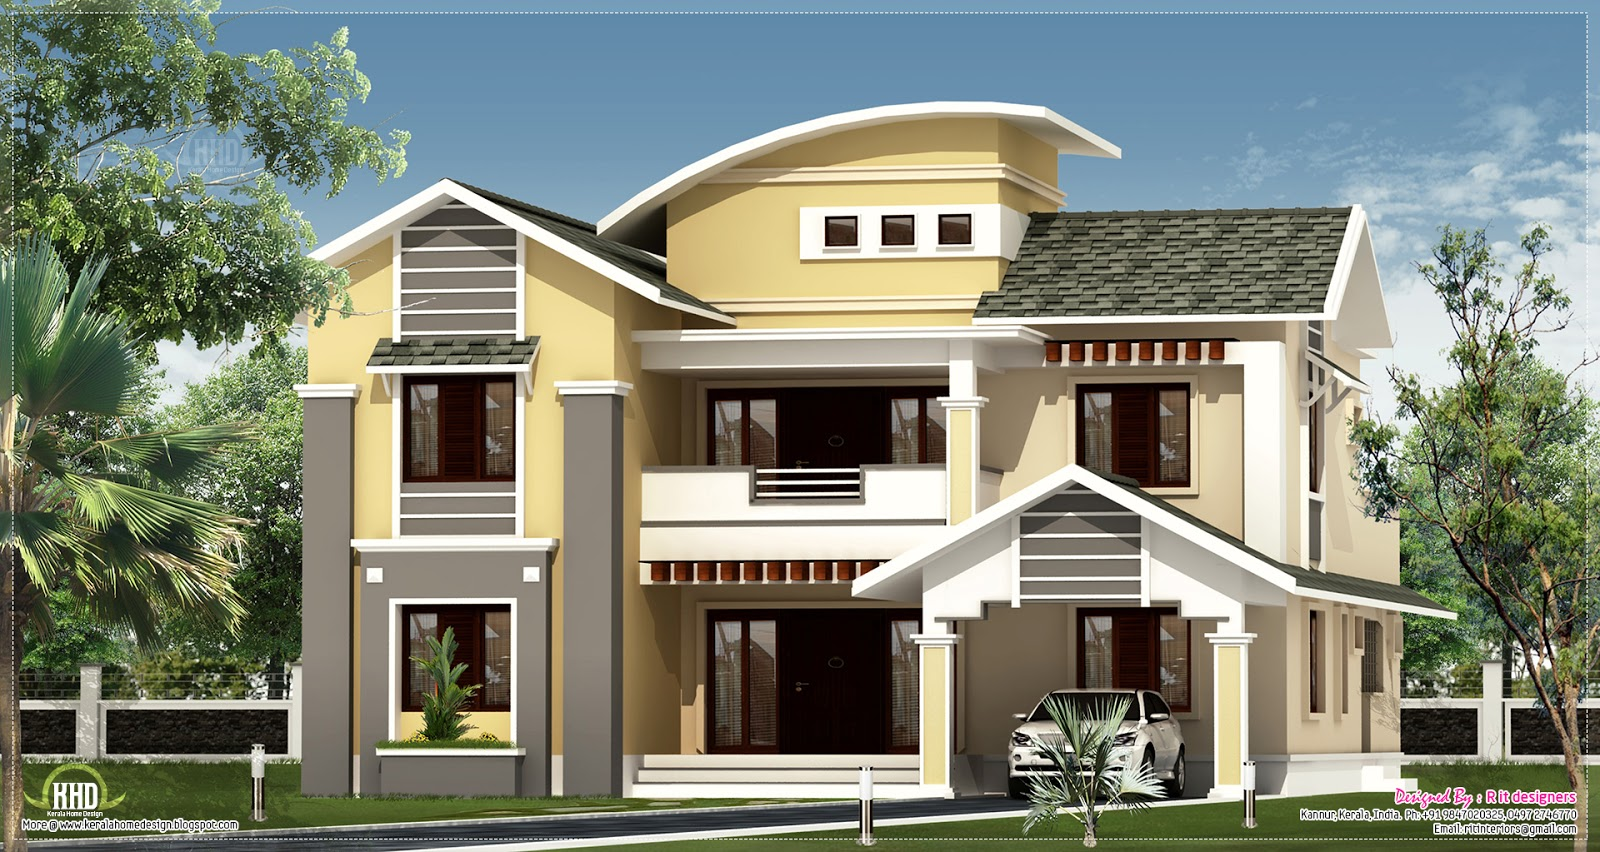 Eco friendly houses 3000 home design from kannur 3000 square foot homes